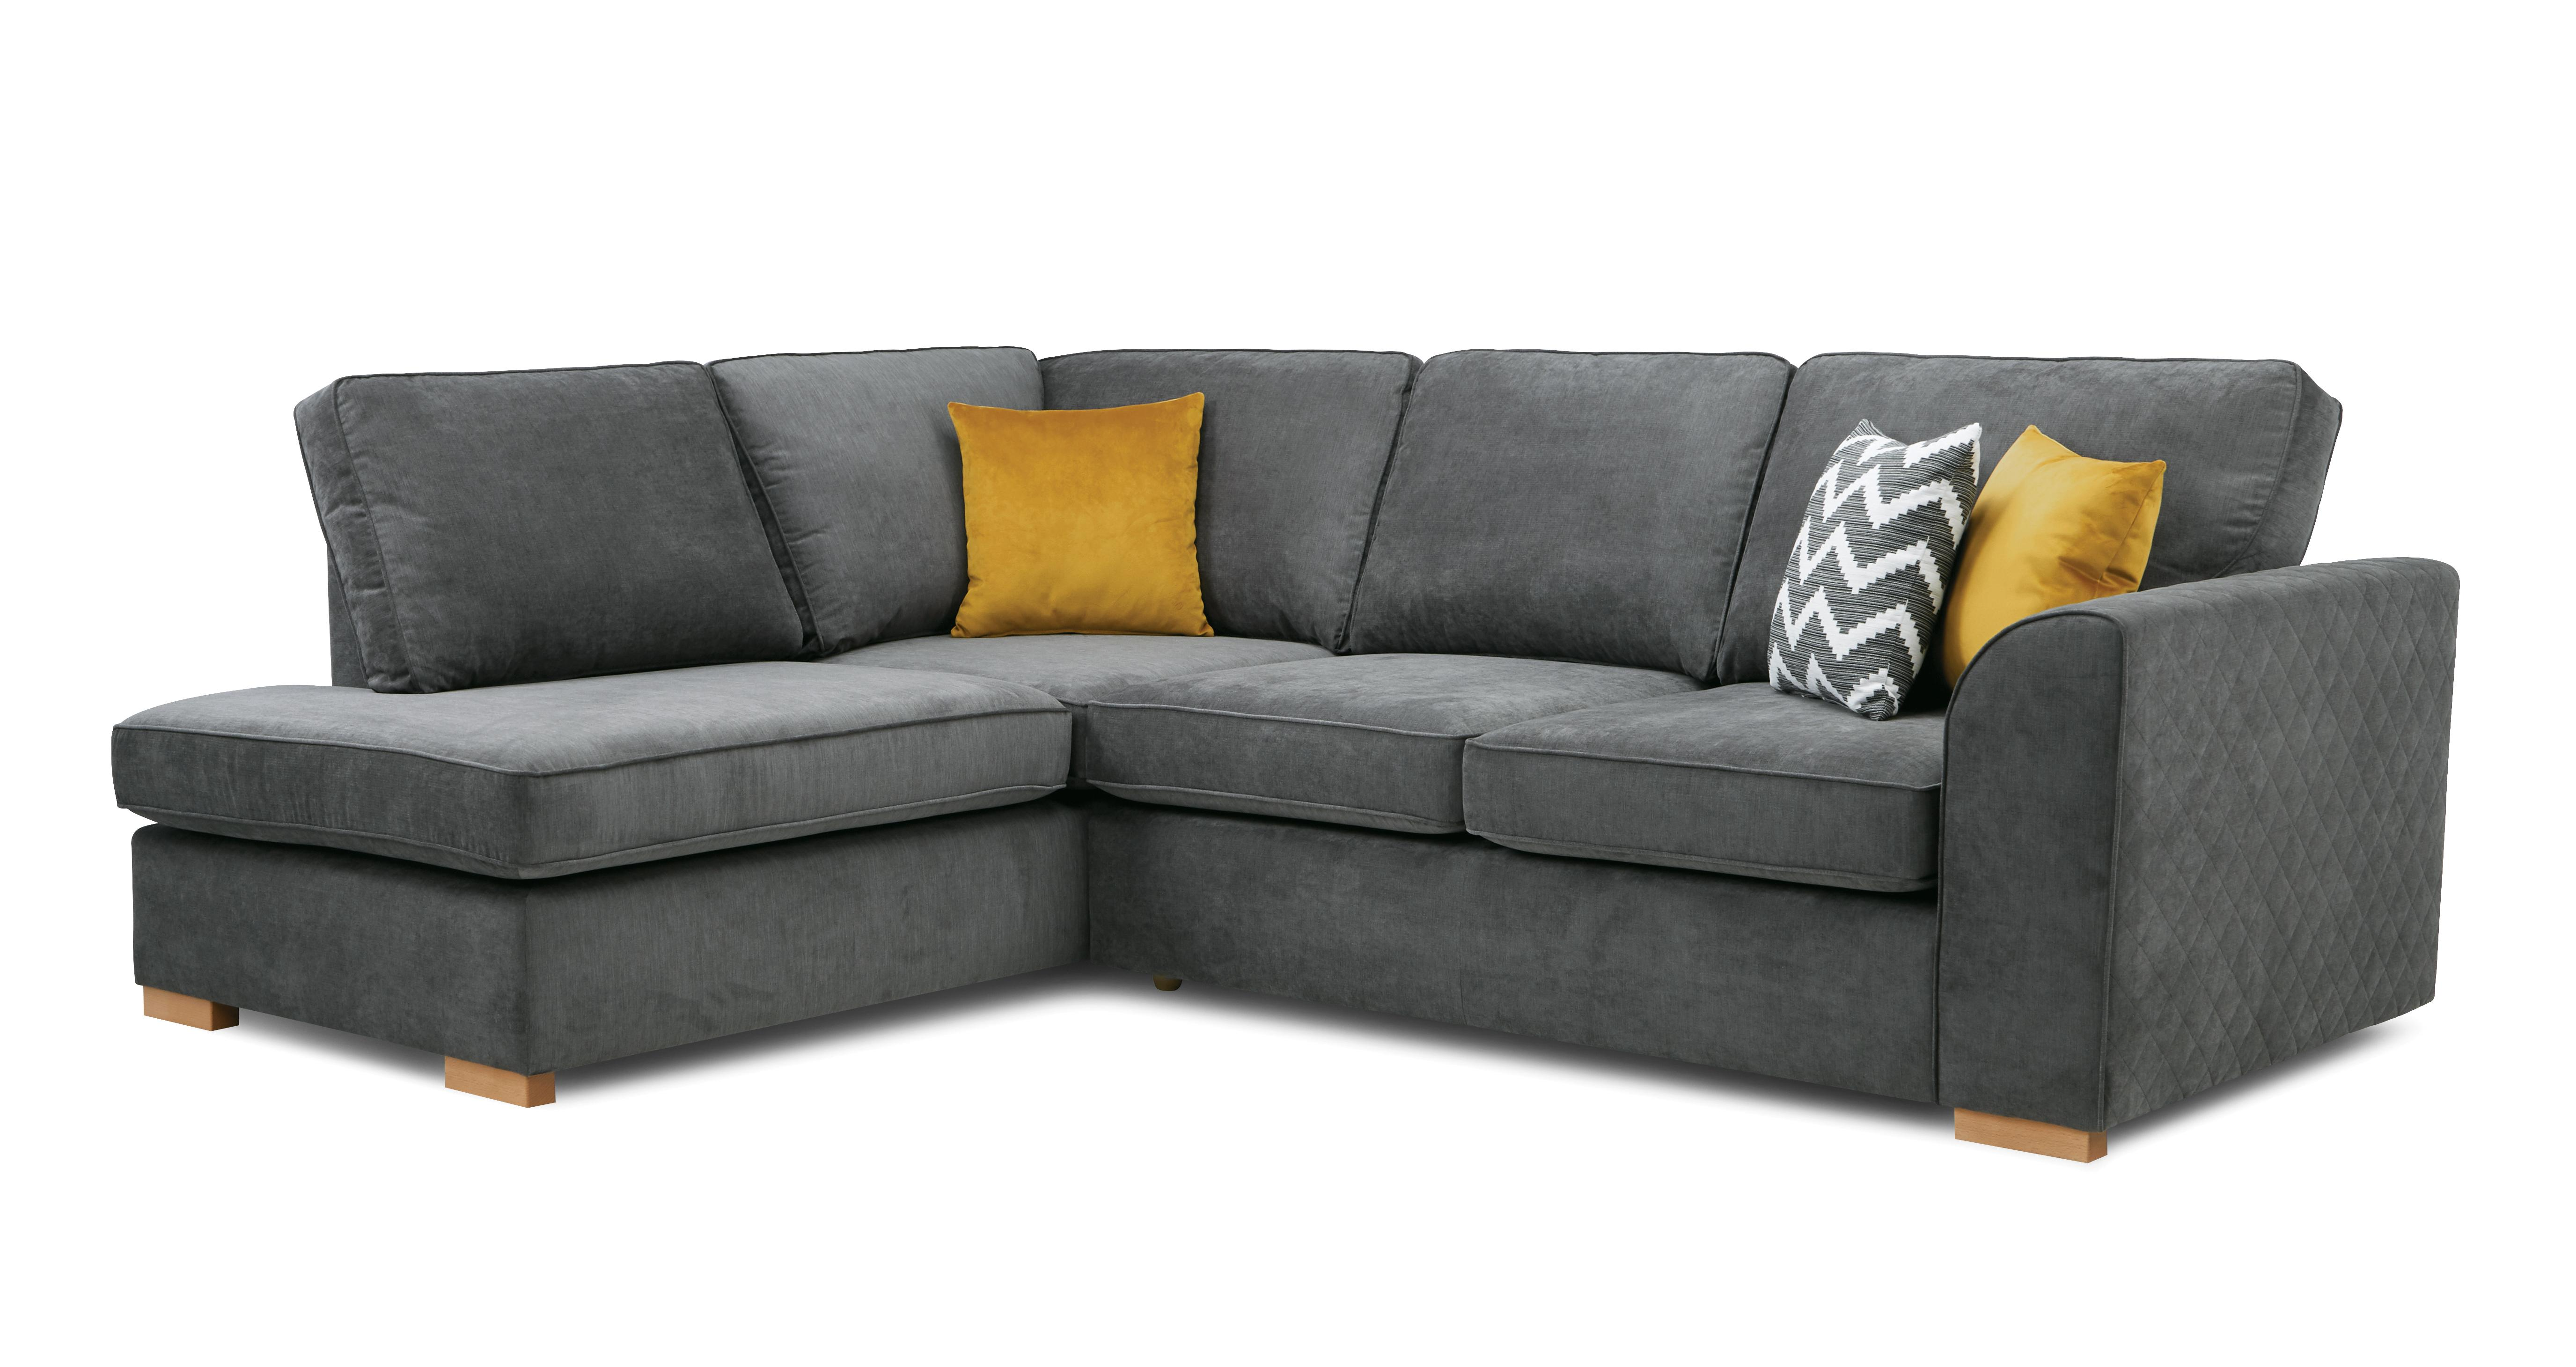 Zavier Right Hand Facing Arm Open End Corner Sofa Plaza Dfs